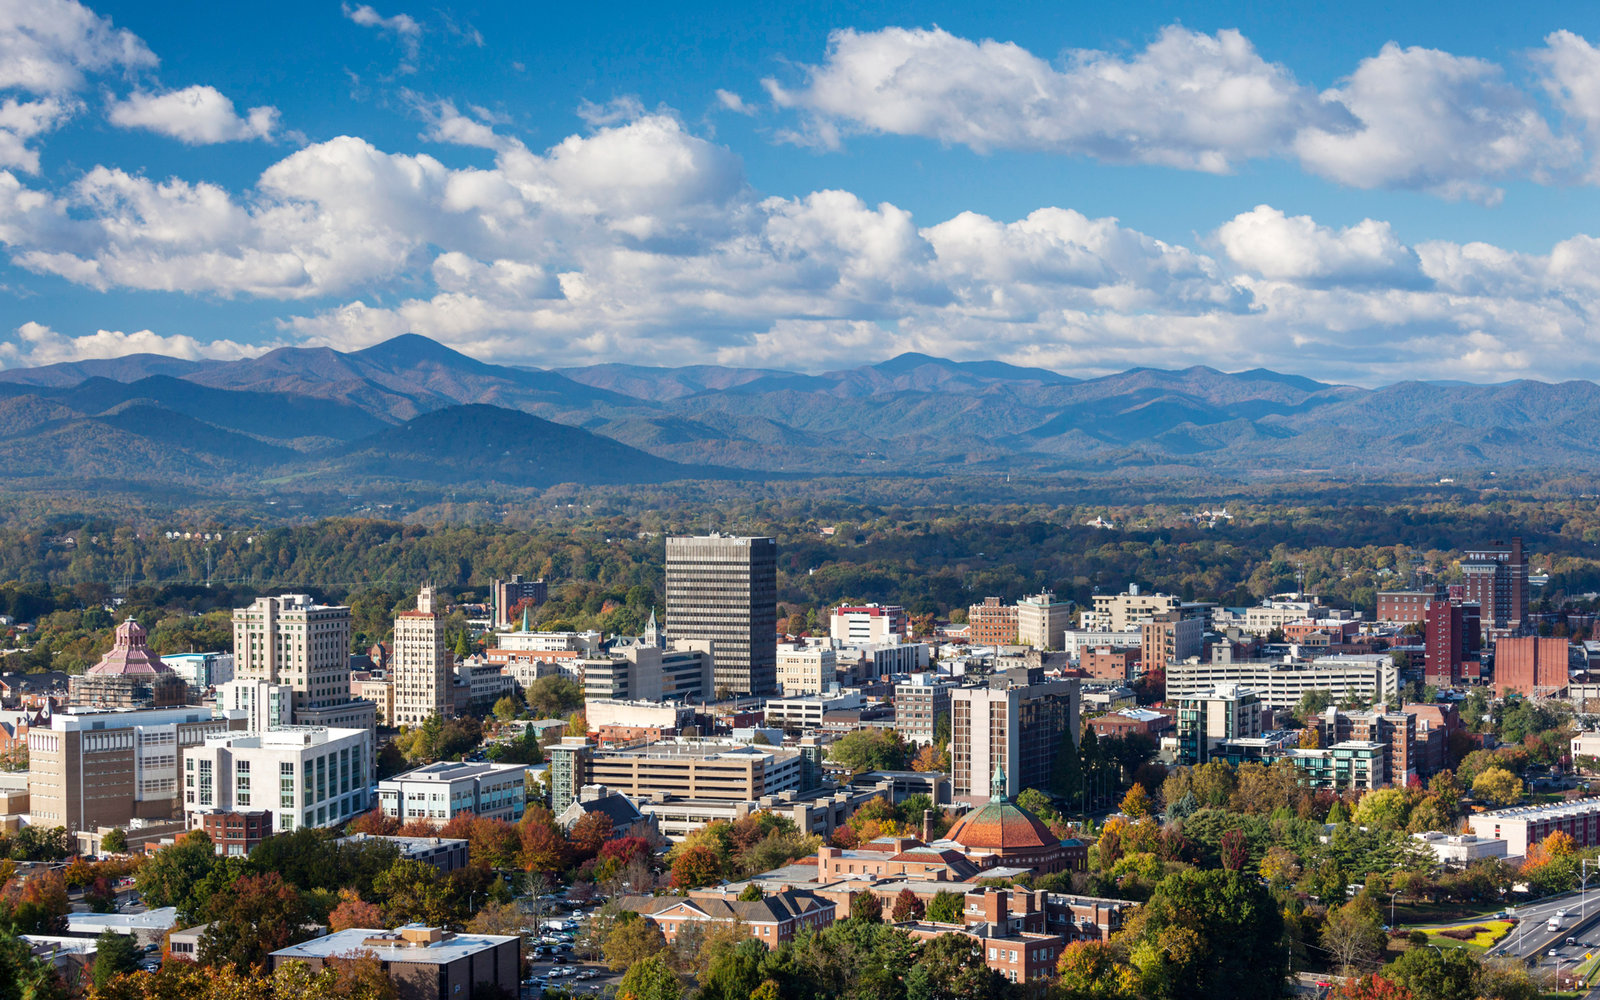 No. 10: Asheville, North Carolina